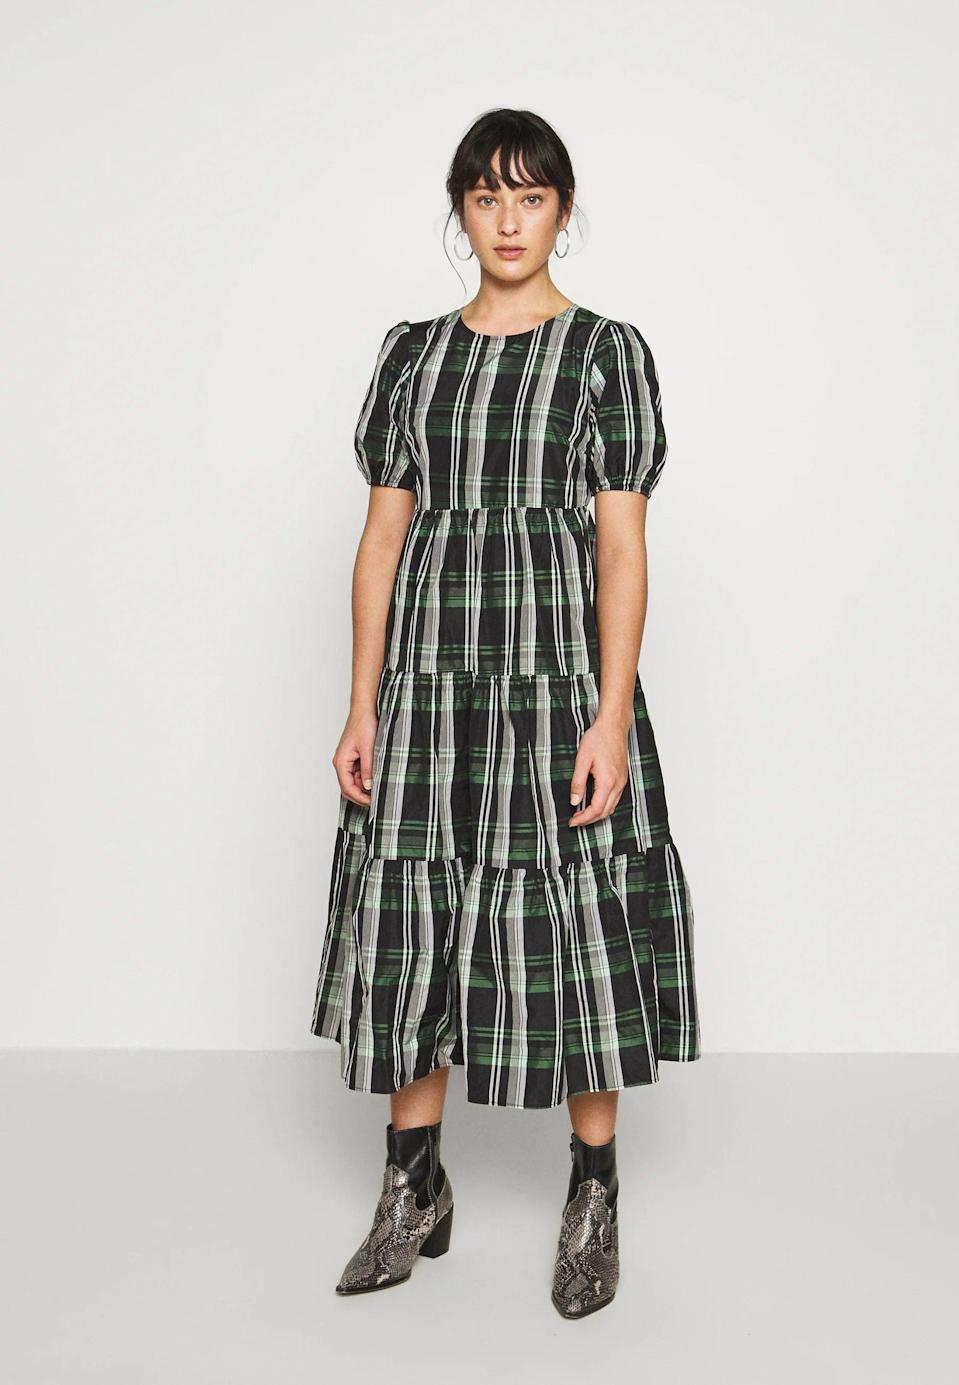 "<br><br><strong>Topshop</strong> Check Taffeta Day Dress, $, available at <a href=""https://www.zalando.co.uk/topshop-petite-check-taffeta-day-dress-green-tq021c02r-m11.html"" rel=""nofollow noopener"" target=""_blank"" data-ylk=""slk:Zalando"" class=""link rapid-noclick-resp"">Zalando</a>"